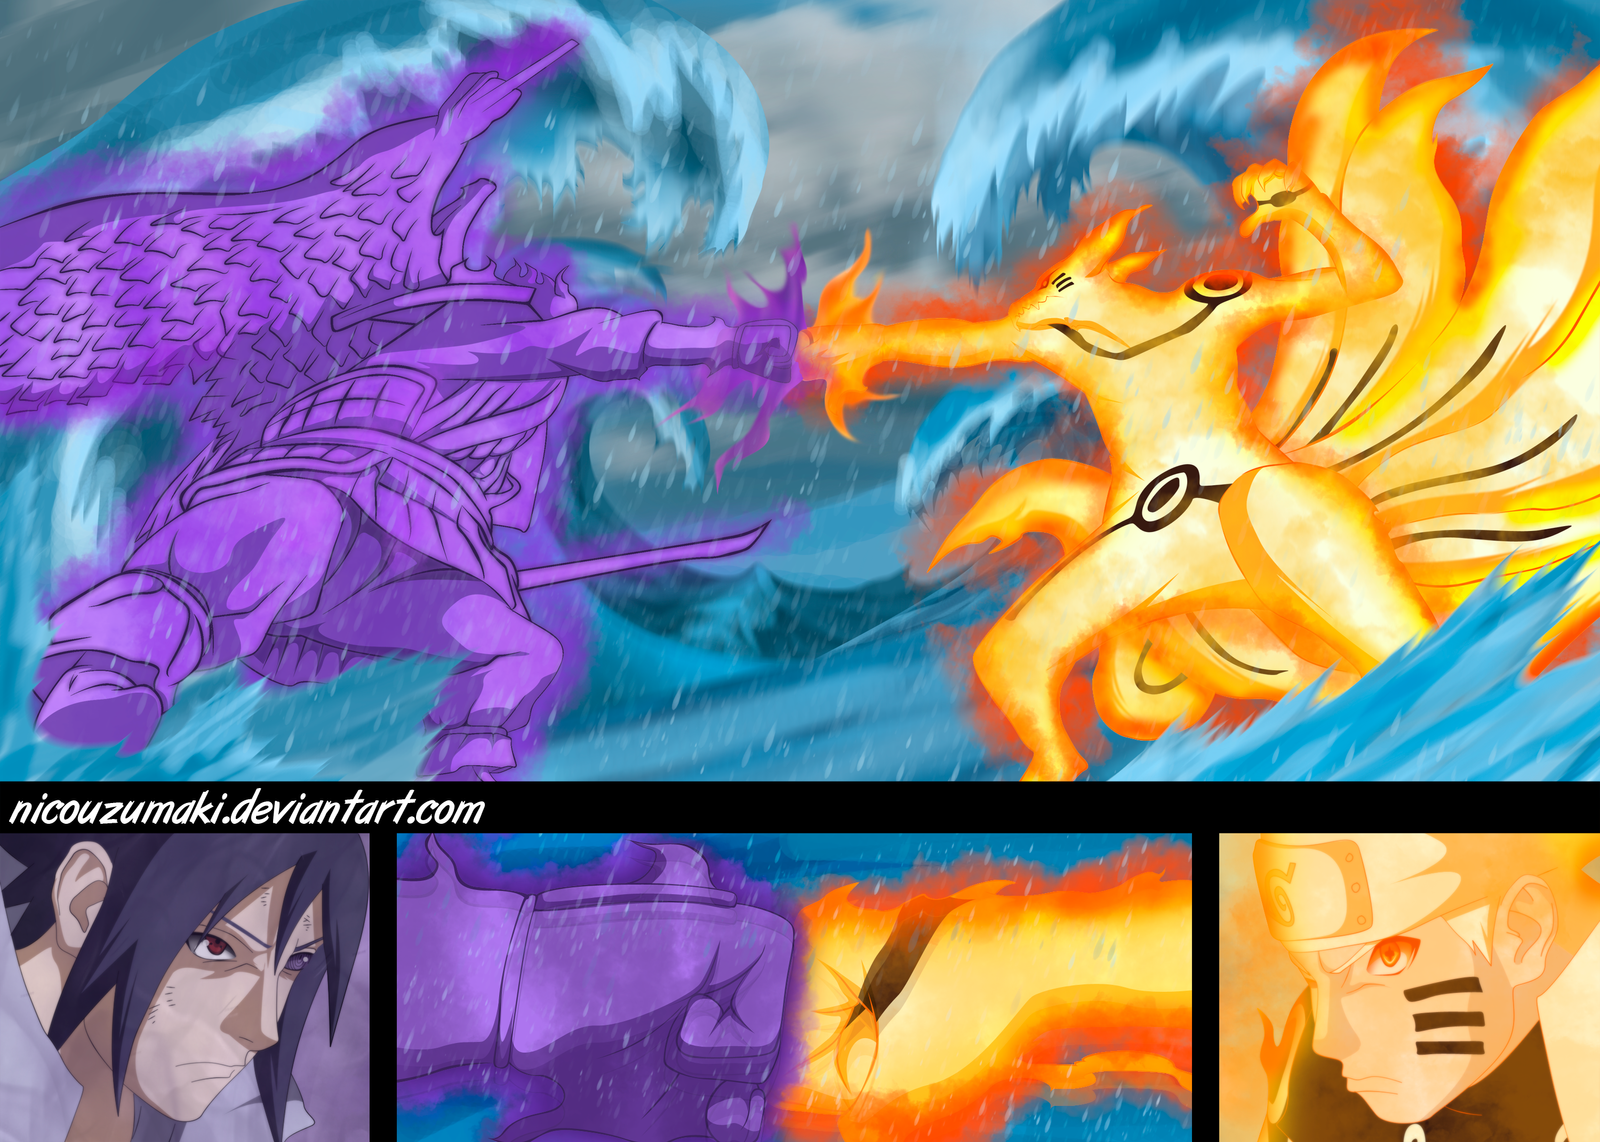 naruto vs sasuke final battle shippuden full fight